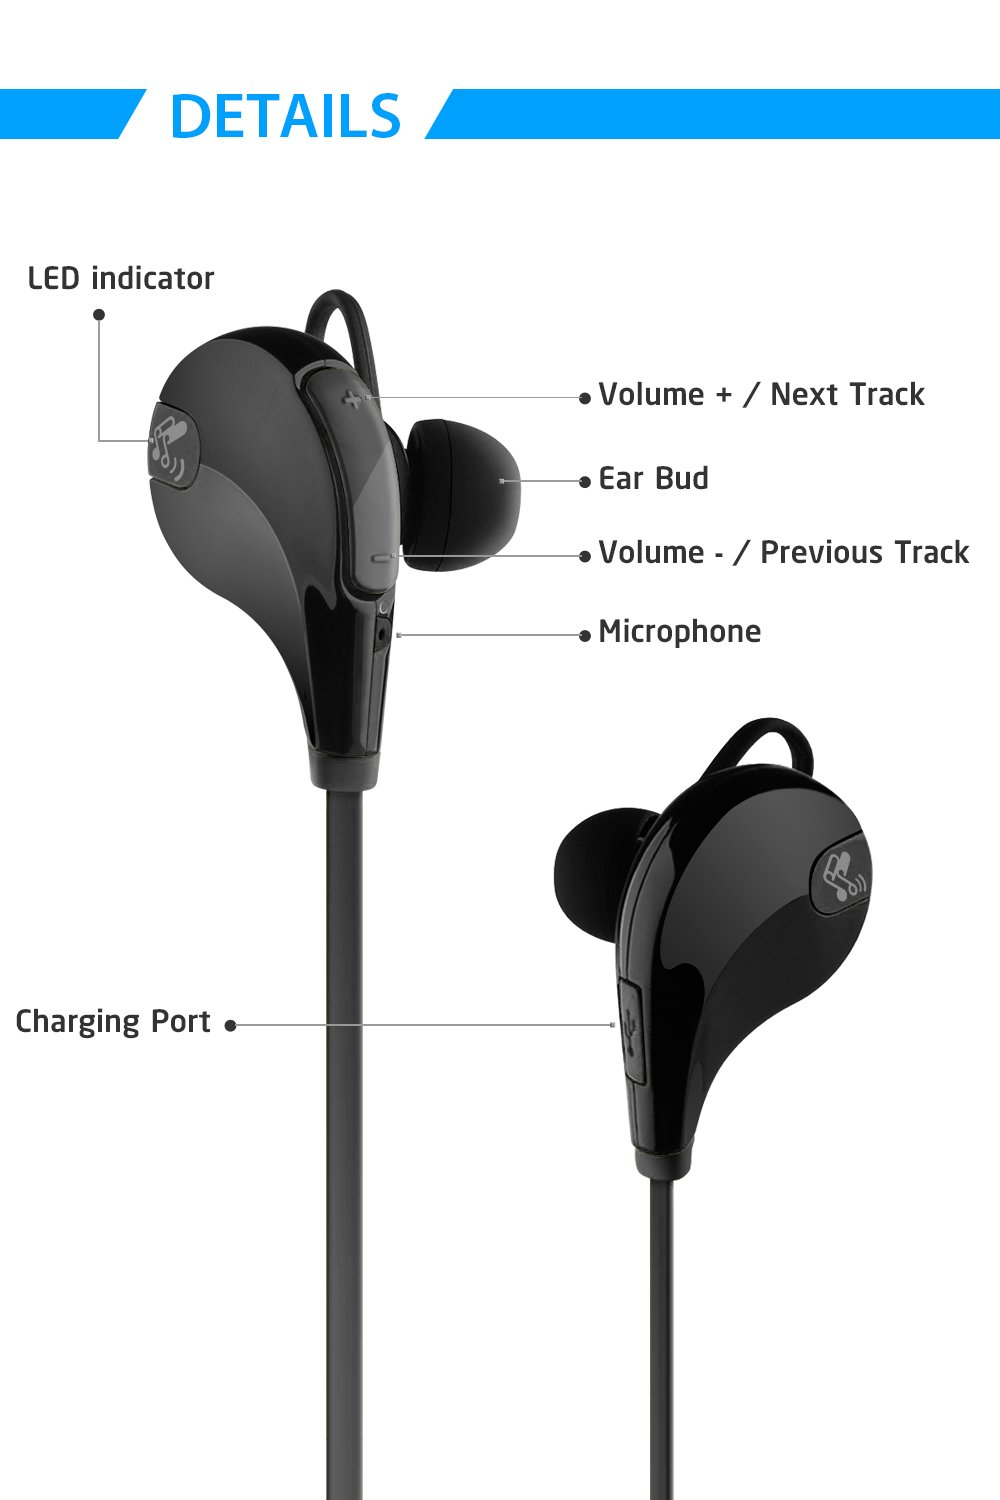 SoundPEATS Qy7 Auriculares Inalámbricos en Estéreo con Bluetooth 4.0 para iPhone, iPad, iPod, Teléfonos Móviles, Tablets, y otros dispositivos, ...